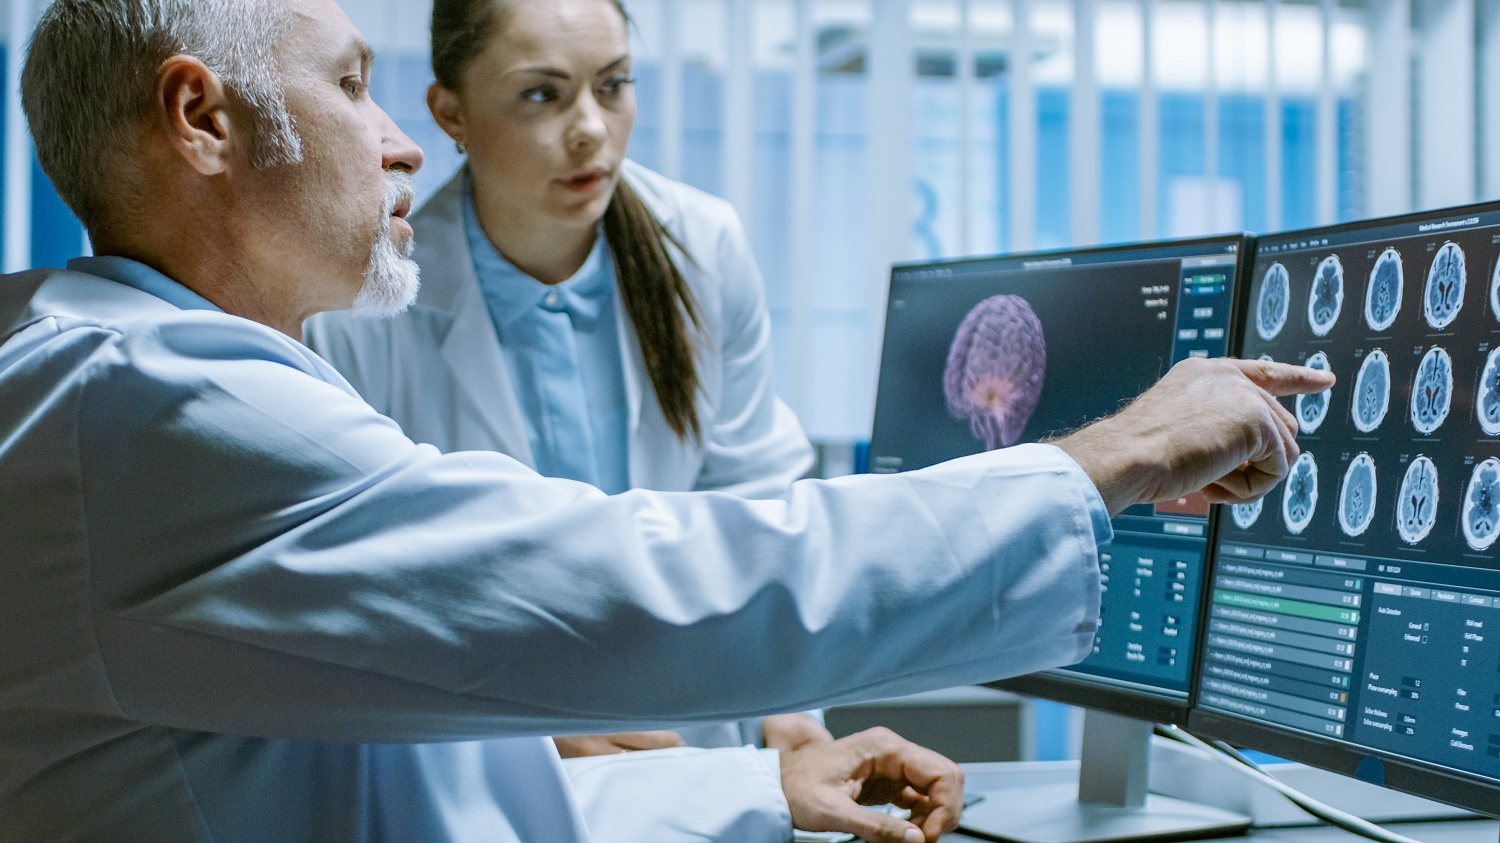 Two Medical Scientists in the Brain Research Laboratory Discussing Progress on the Neurophysiology Project Curing Tumors. Neuroscientists Use Personal Computer with MRI, CT Scans Show Brain Images.